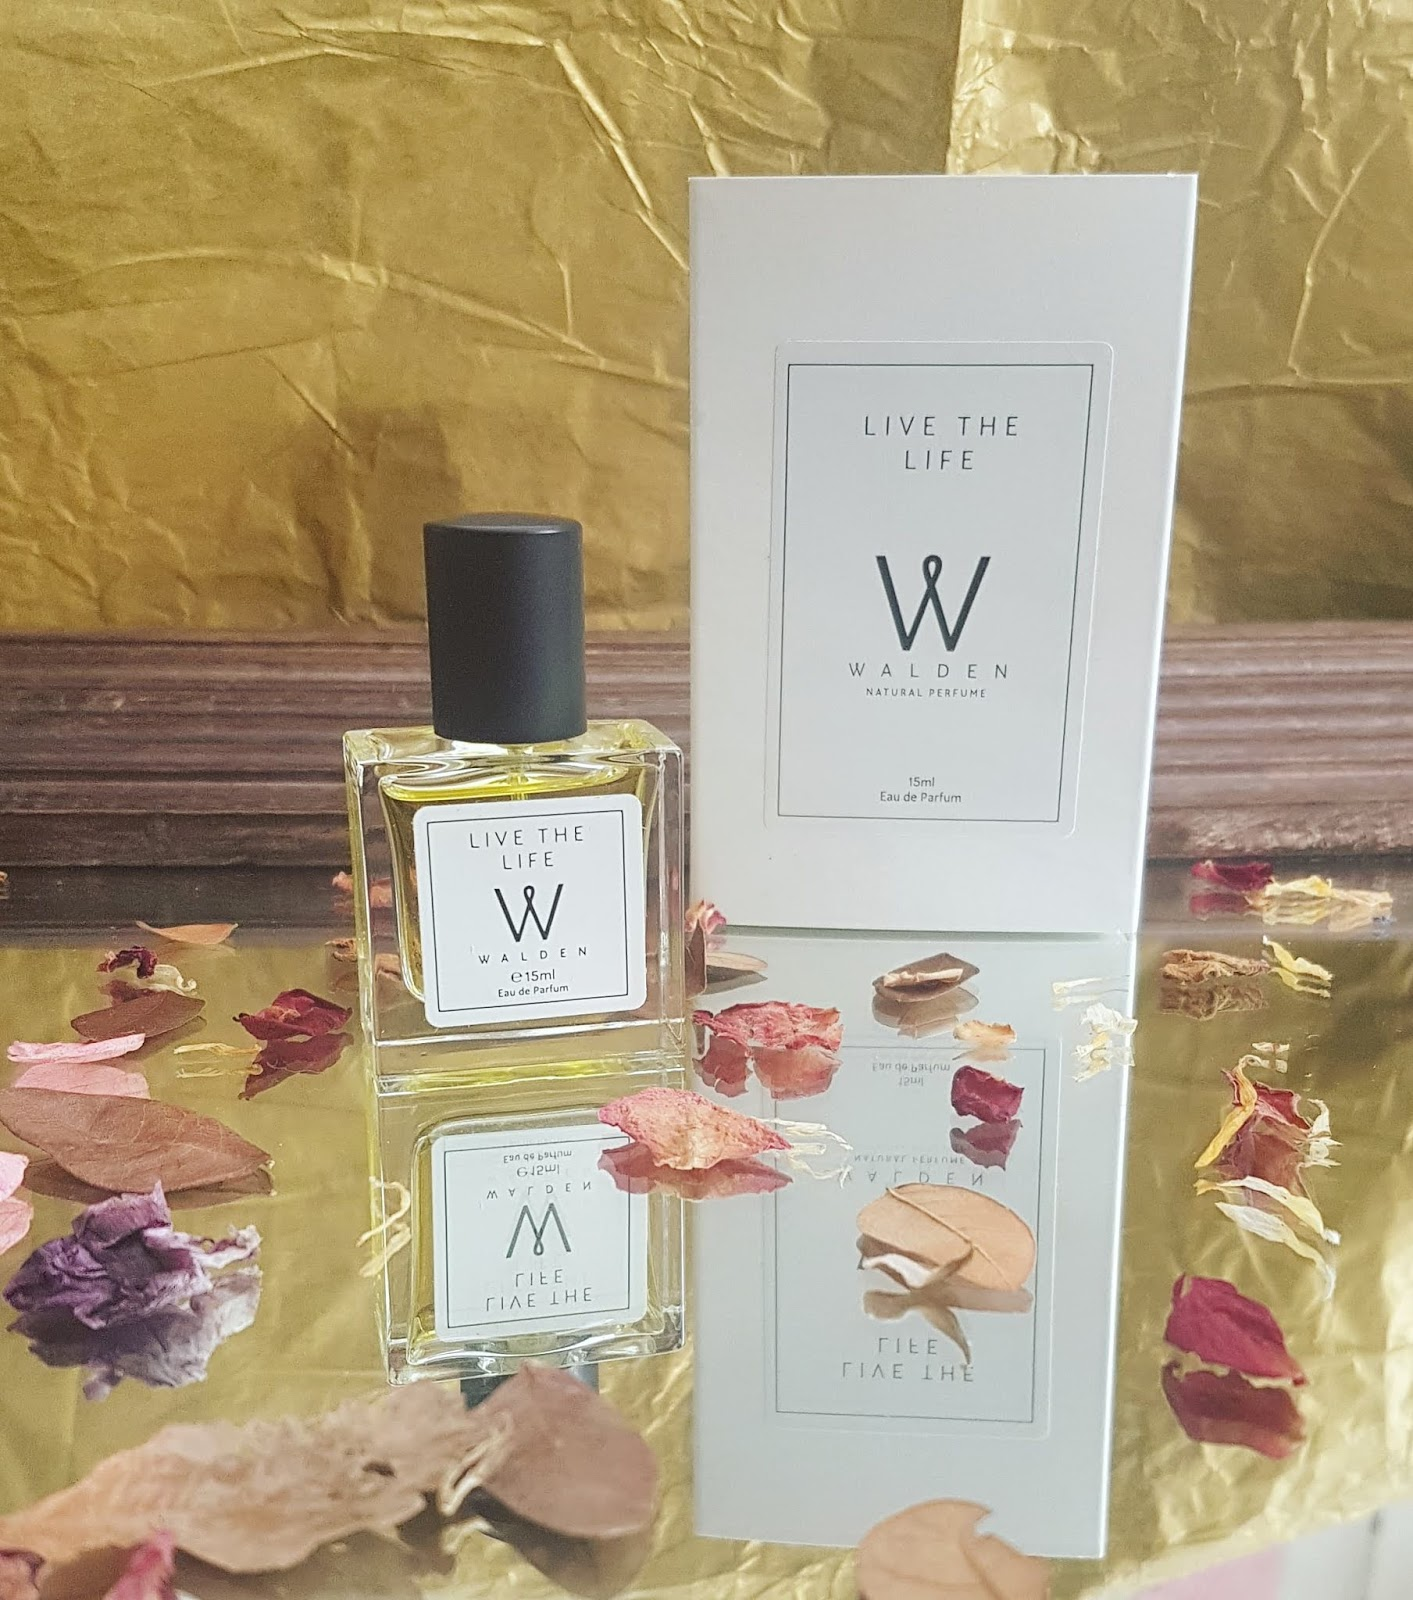 Walden Natural Perfume Review - Natural Perfume Purse Spray